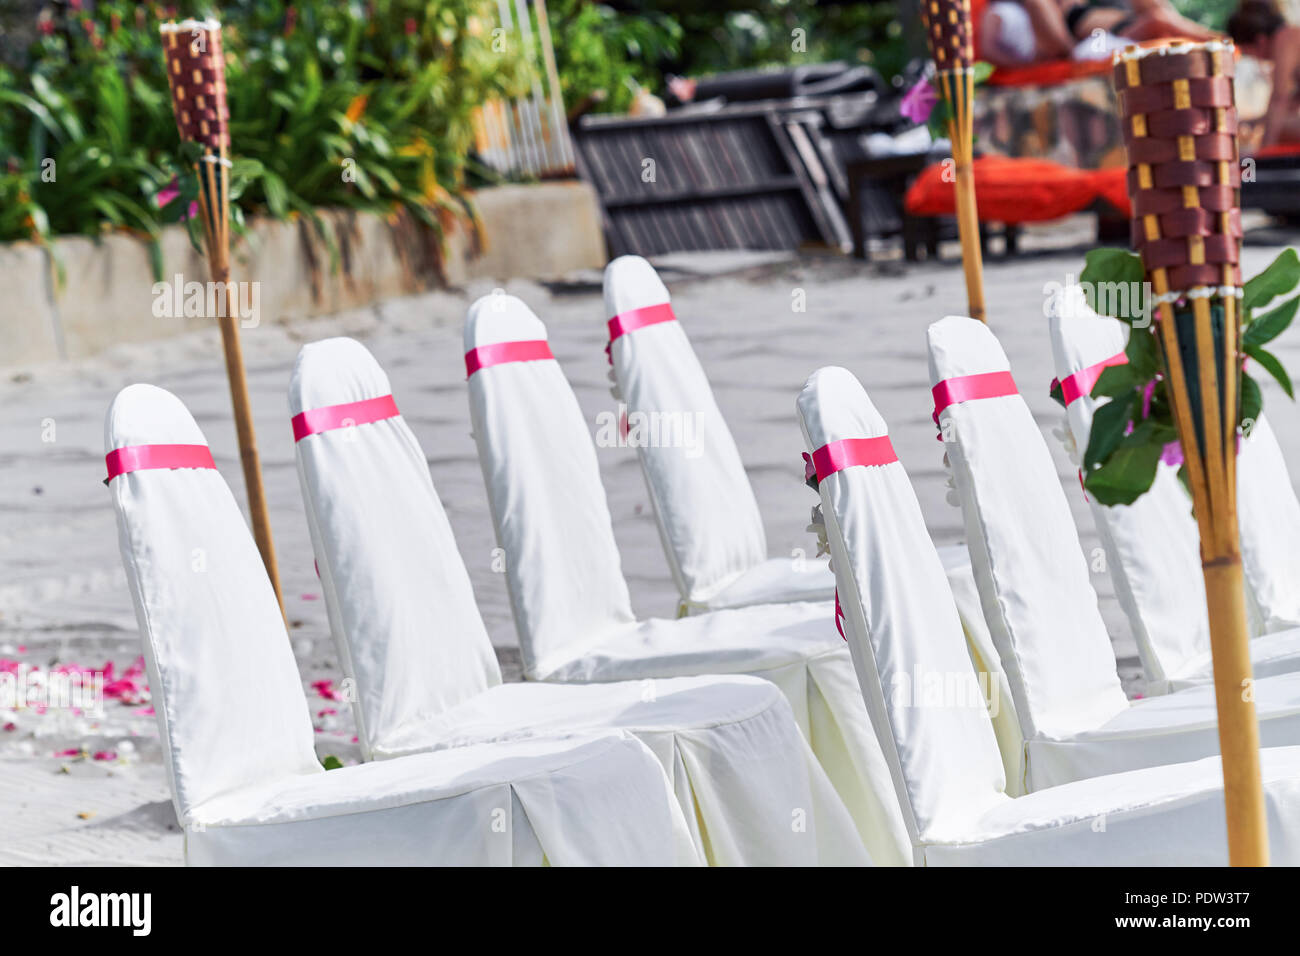 Wedding Chairs Spandex White Cover Decorating With Red Pink Organza Sash Line Up For Beach Wedding Venue Settings Stock Photo Alamy